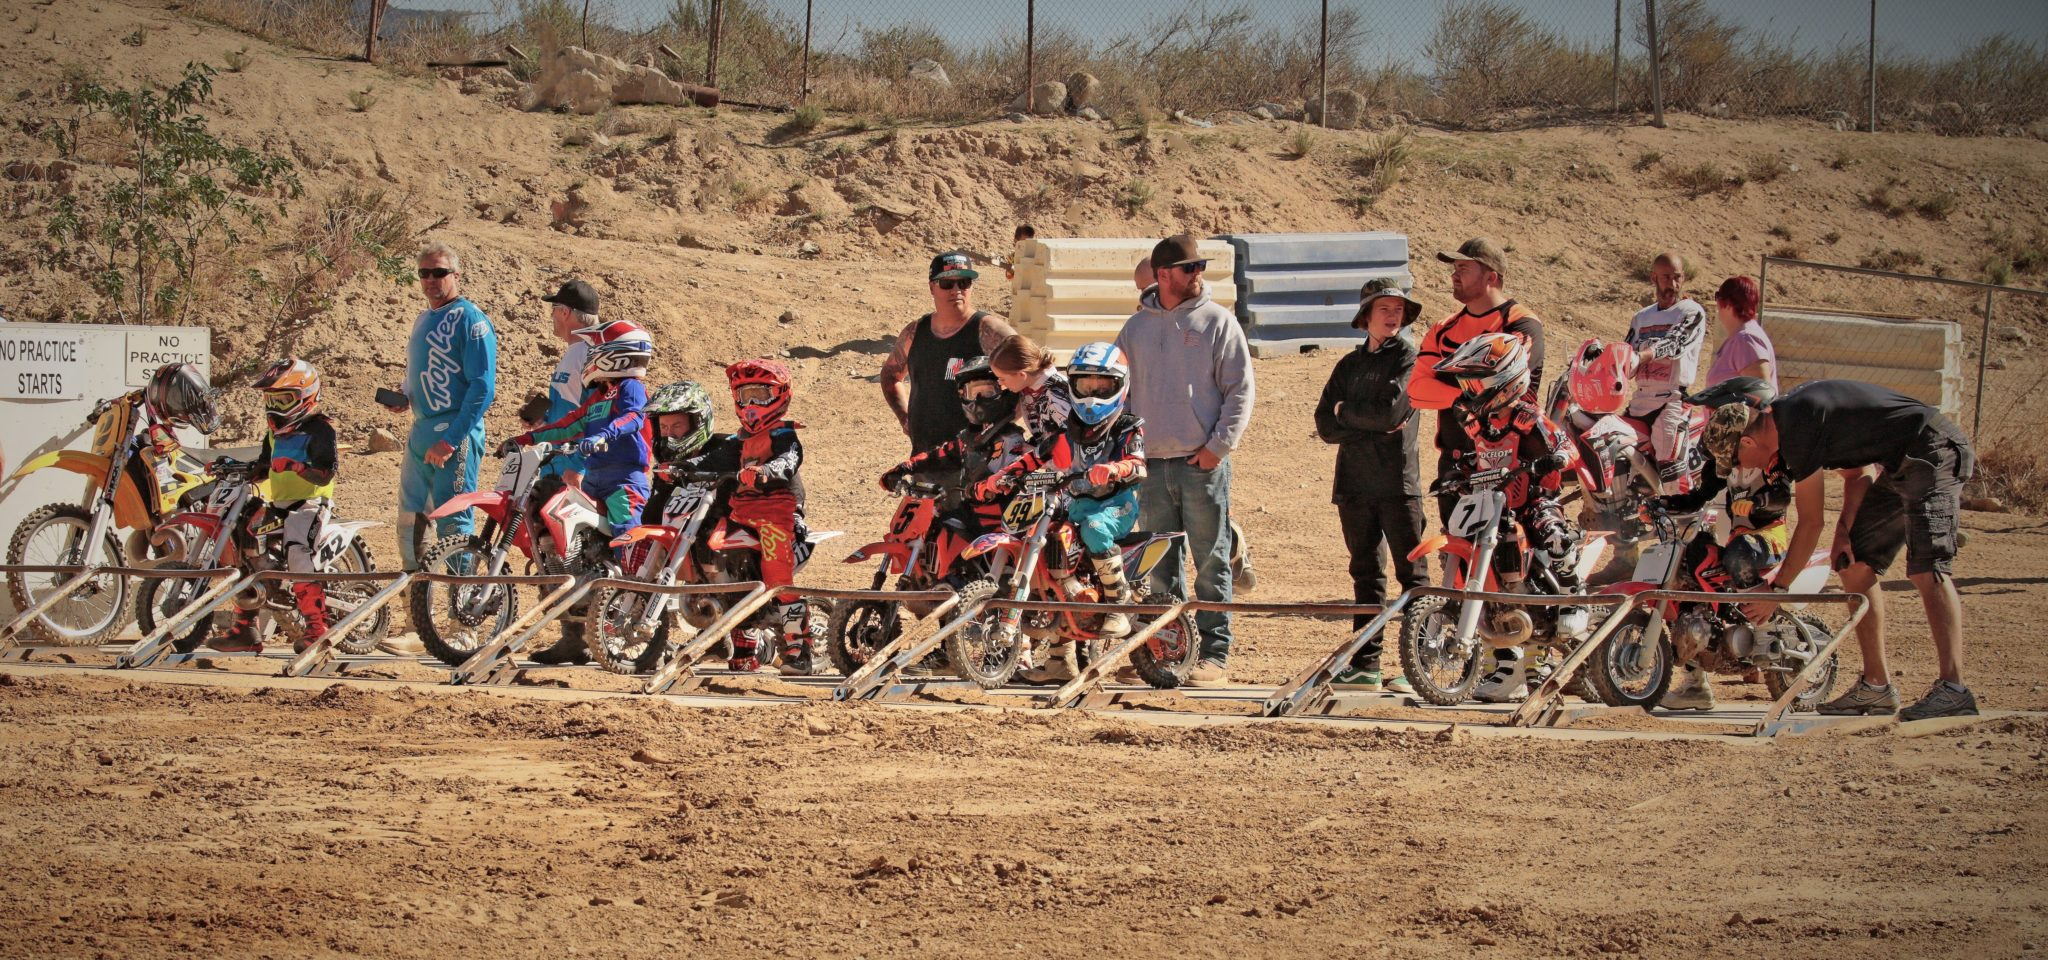 Peewee class racers and parents on the starting gate.